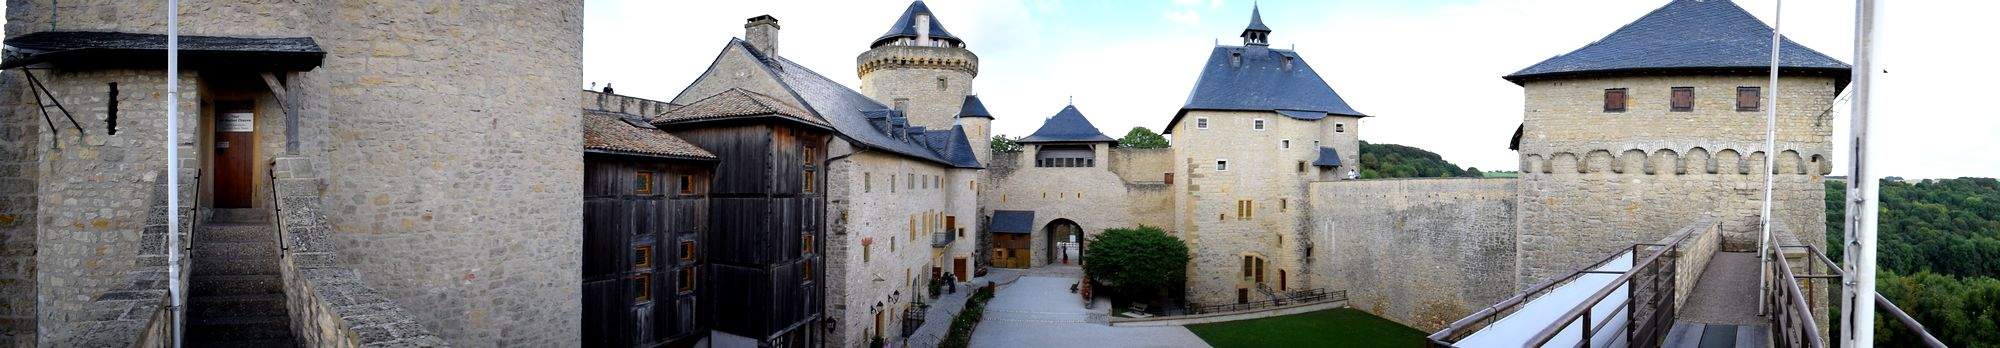 panoramique-large-chateau-malbrouck